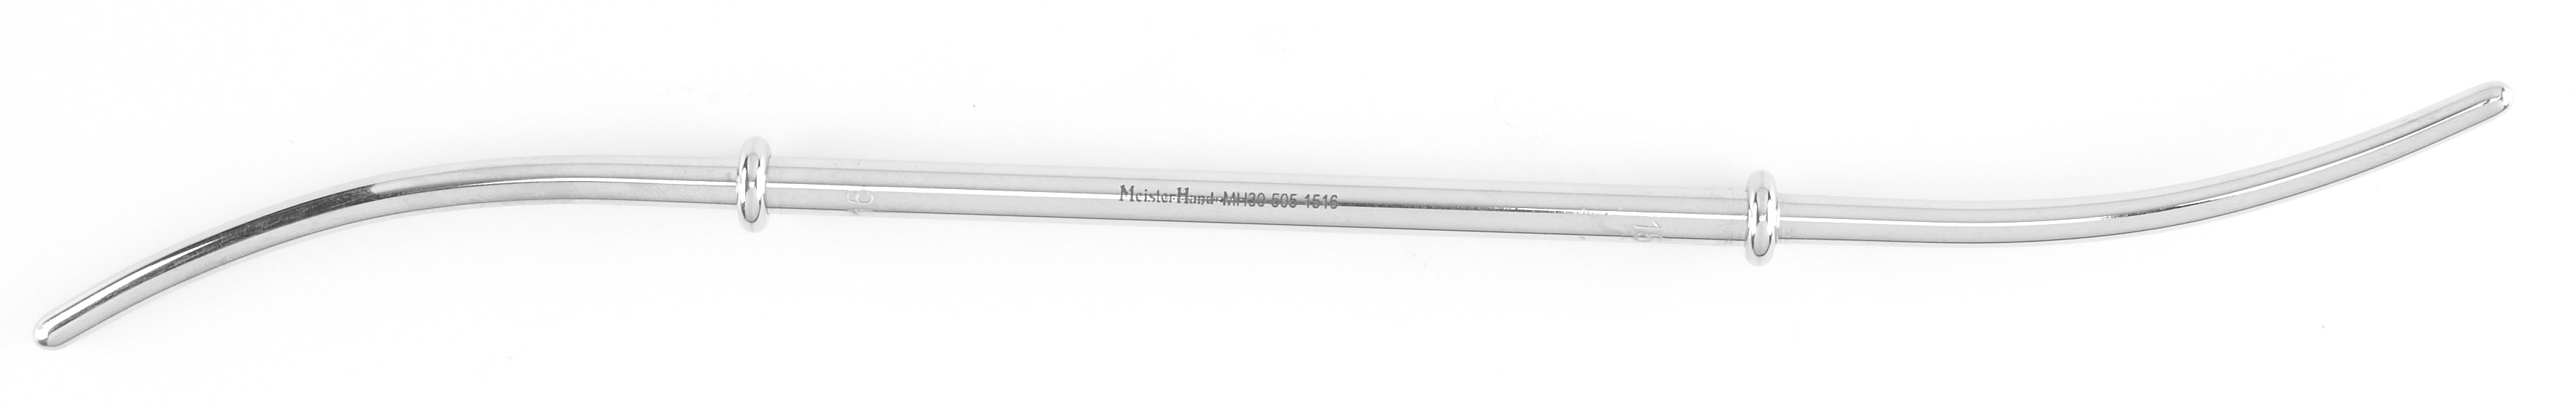 hank-uterine-dilators-10-1-2-267-cm-double-end-15-16-fr5-53-mm-mh30-505-1516-miltex.jpg